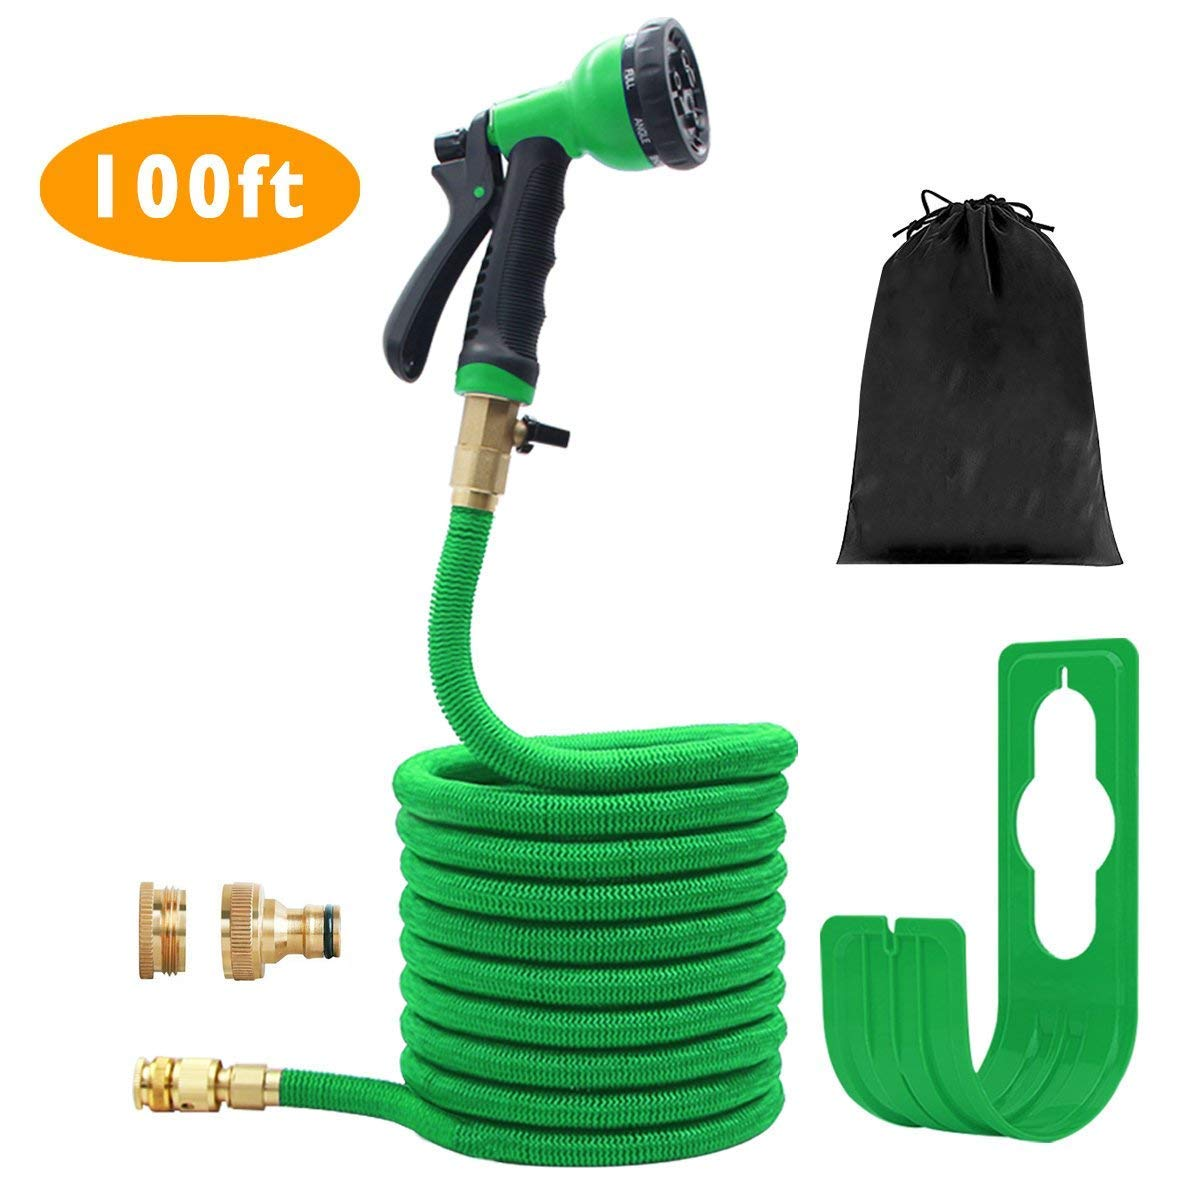 Bosch Garden and Watering 5FP7FHGT Double Female Hose Connector